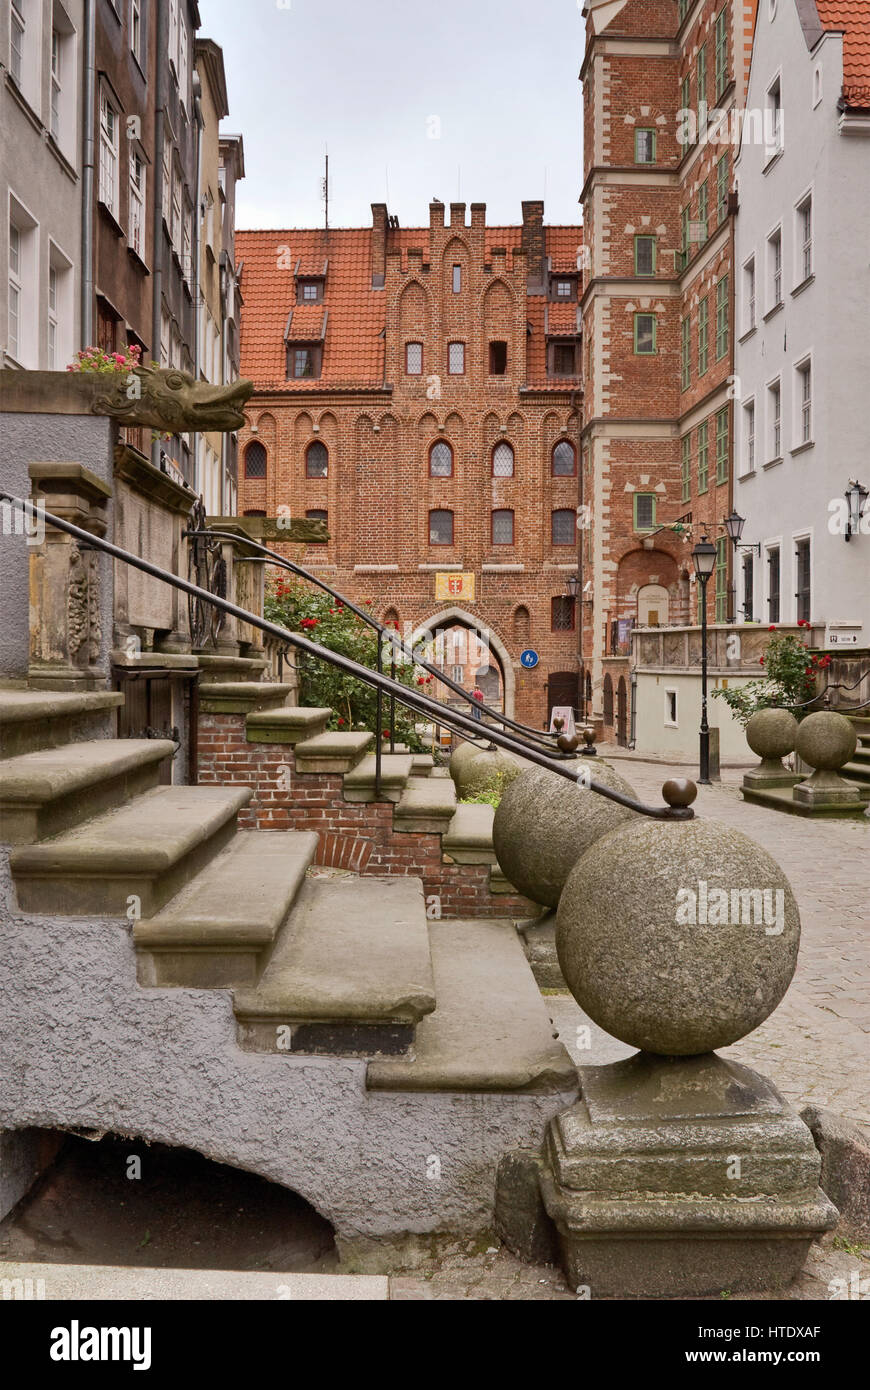 Terrace steps at ulica Mariacka (St Mary Street) in Gdansk, Pomerania, Poland - Stock Image